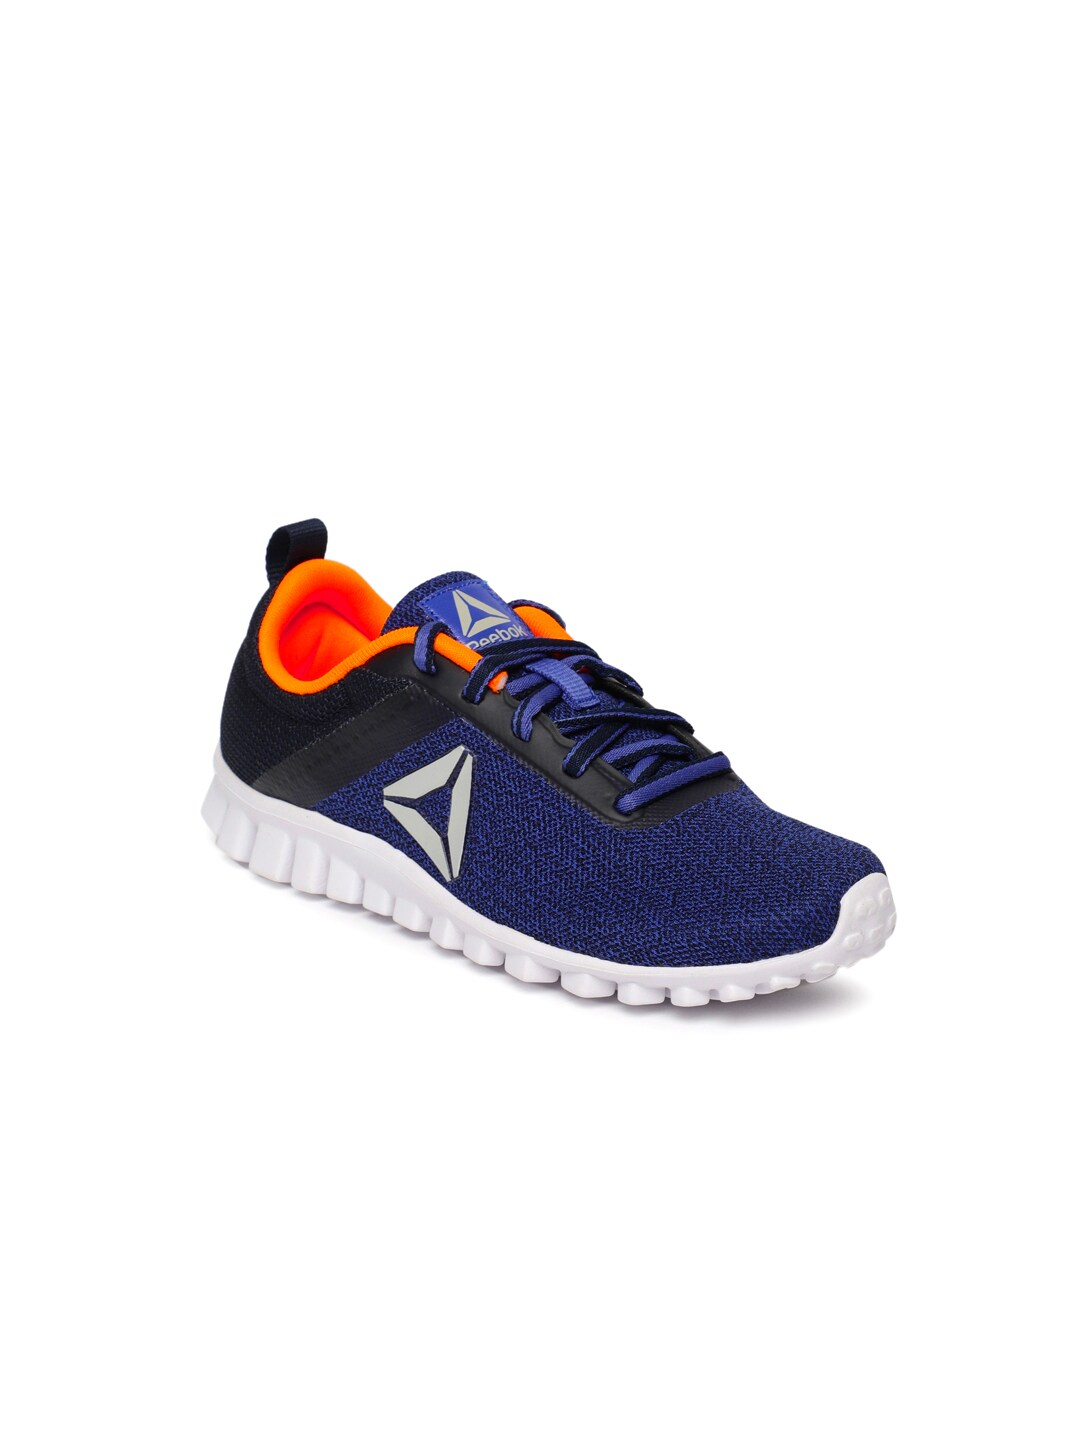 Shoes India For In Sports Online Buy Kids Boys PkZuOXiT